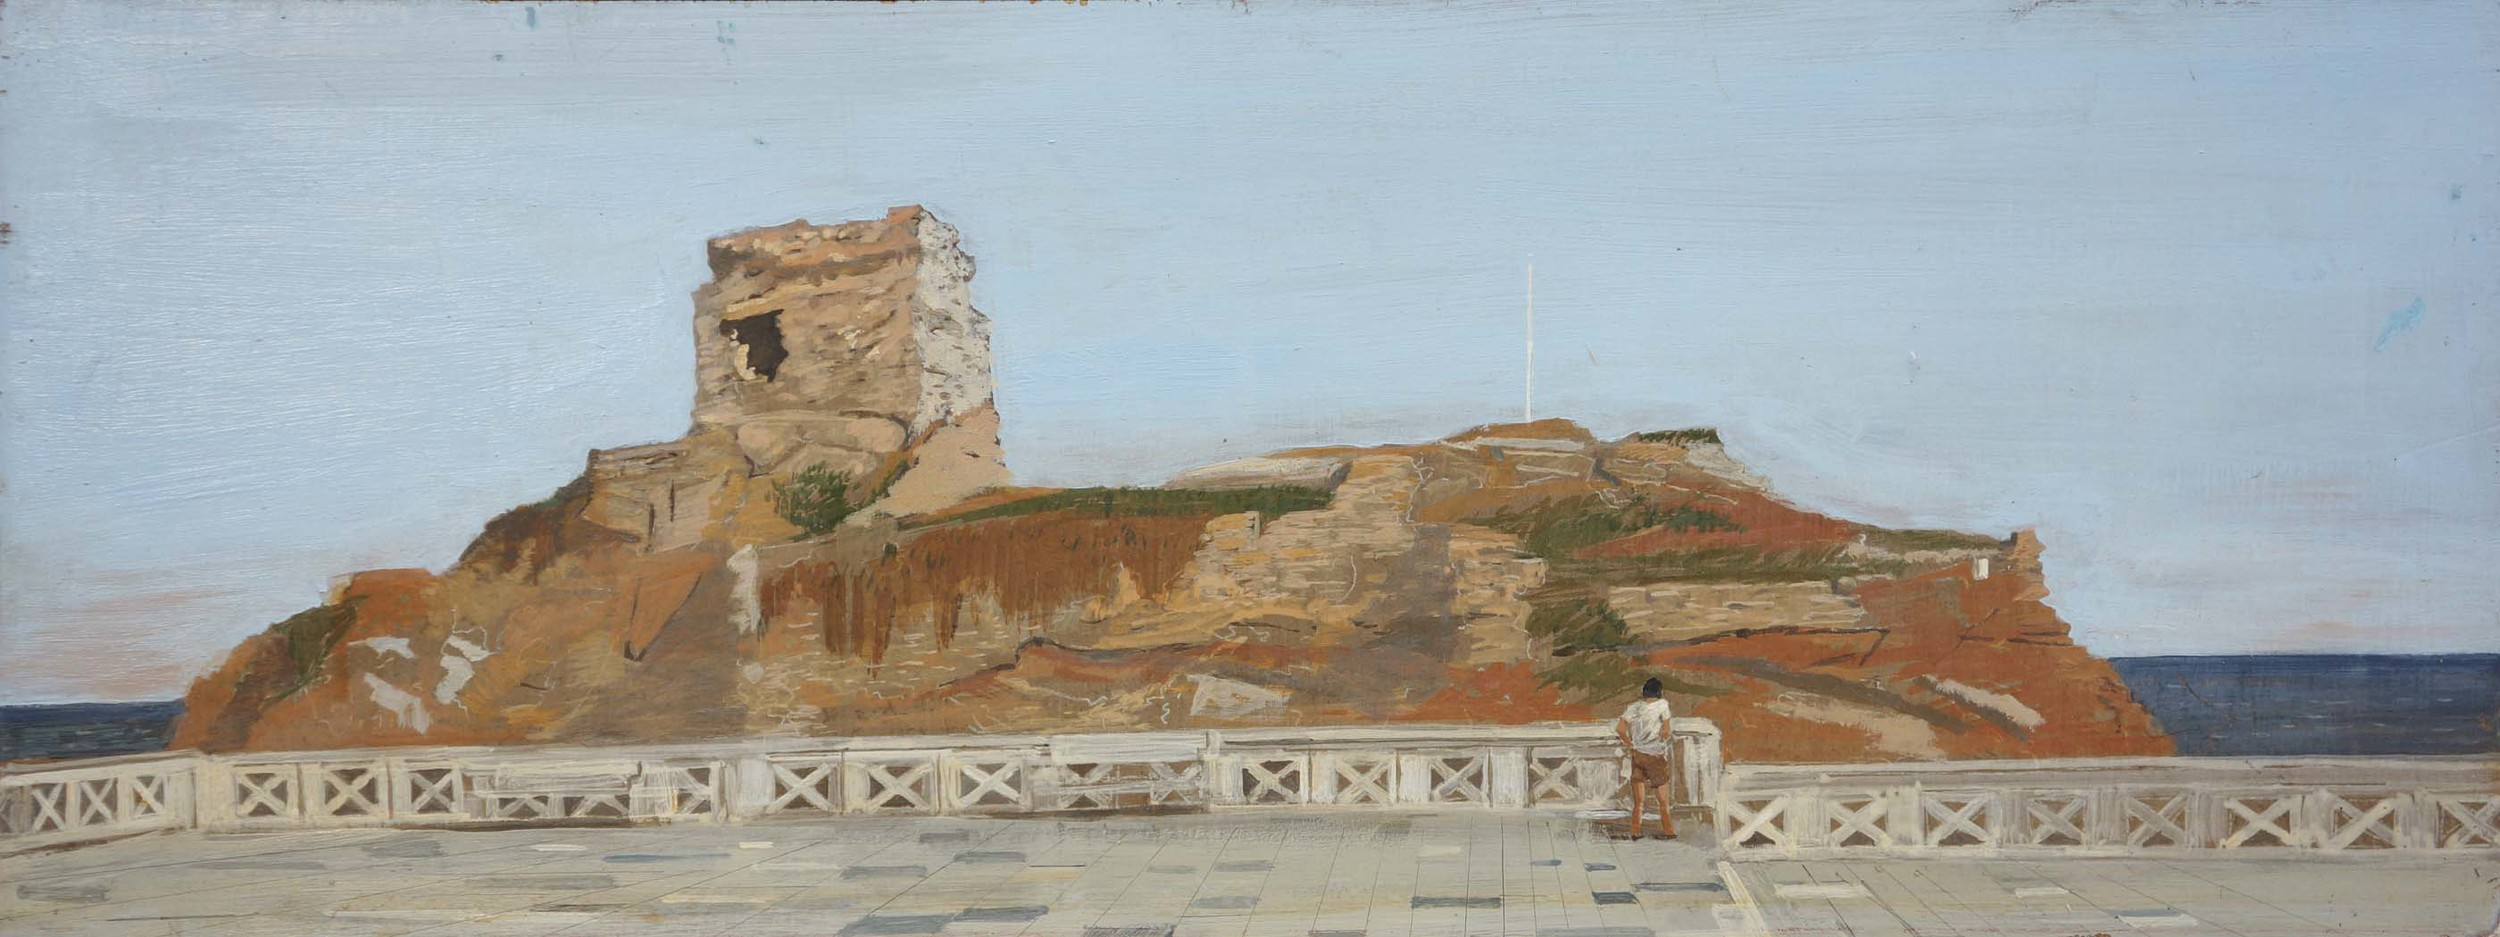 figure contemplating tourlos, andros   1975 egg tempera on board 18x47 cm.  coll. the artist